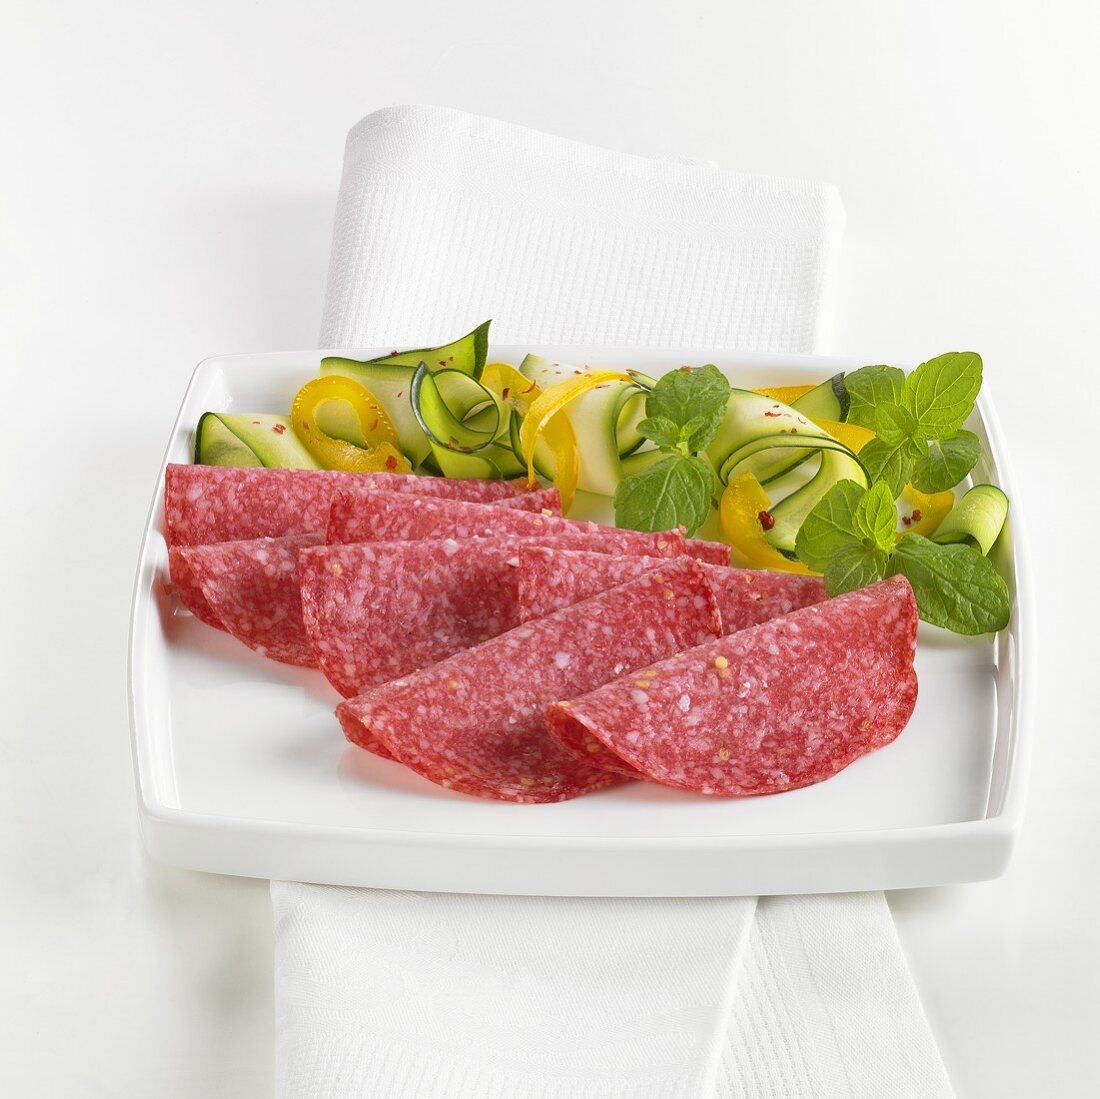 Slices of salami on plate with vegetable garnish